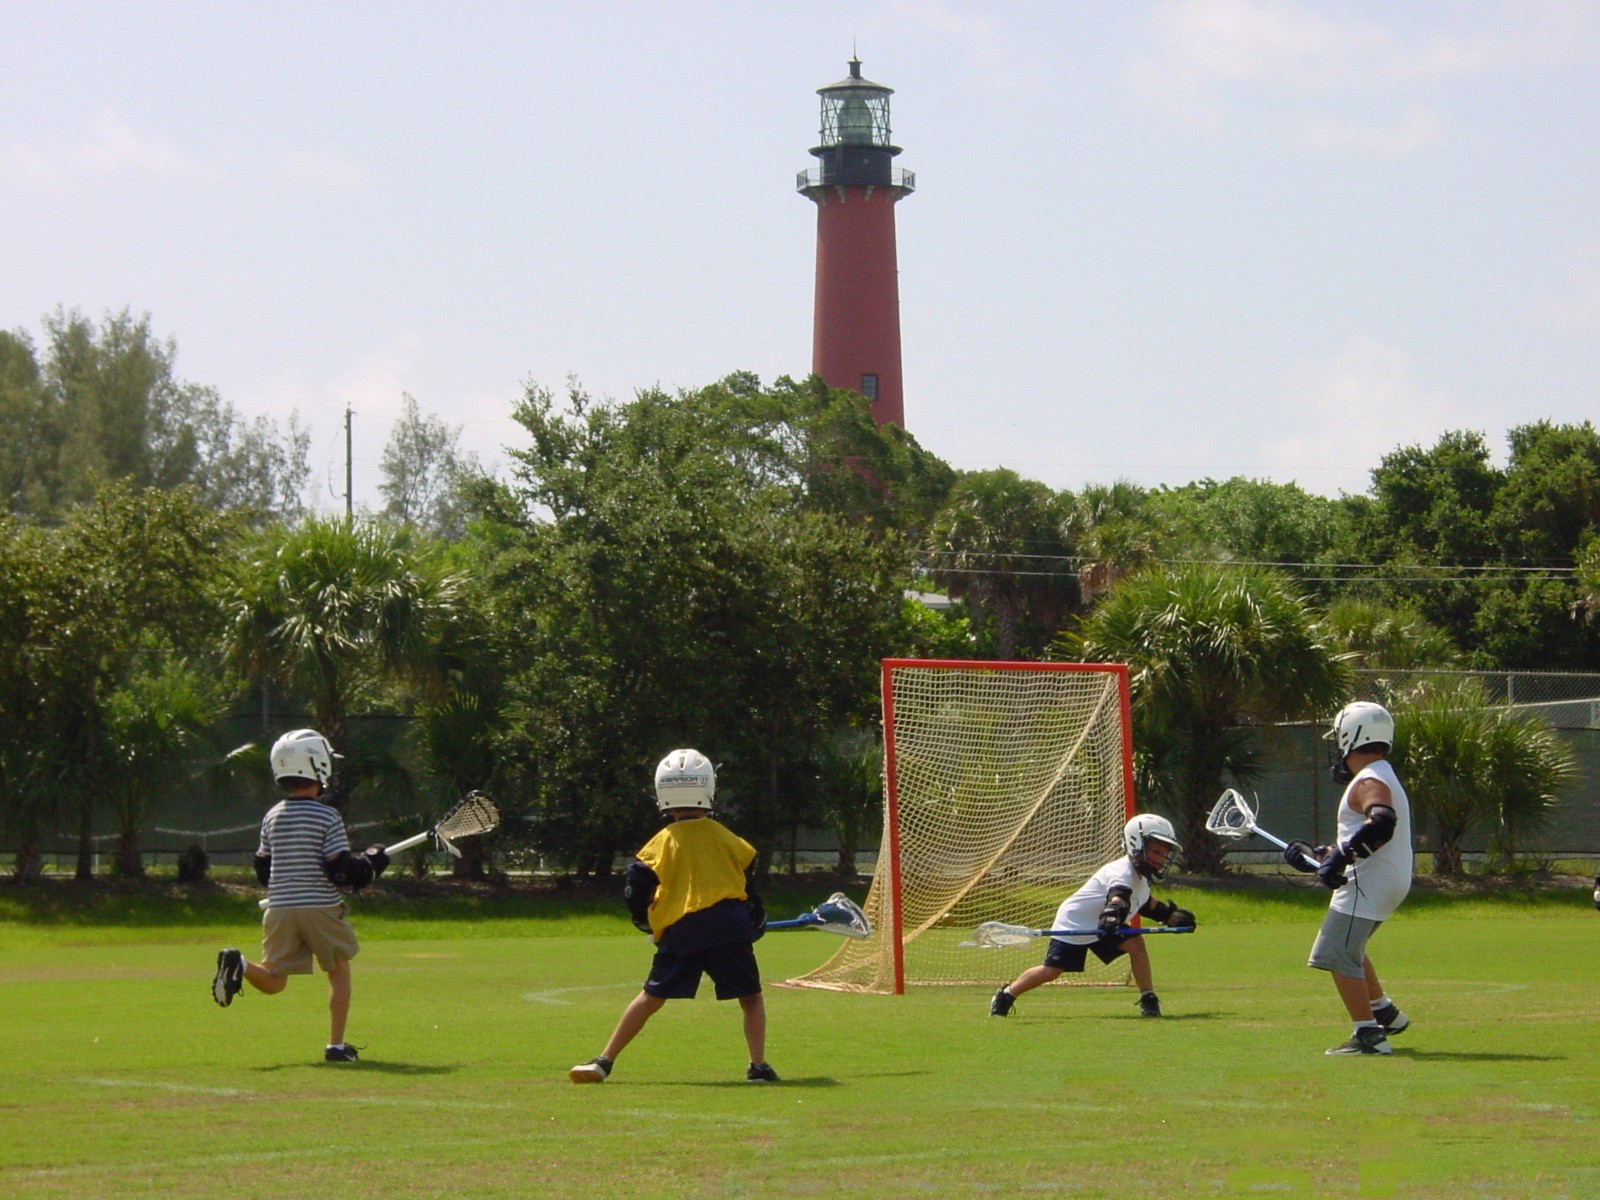 Soccer players near the lighthouse